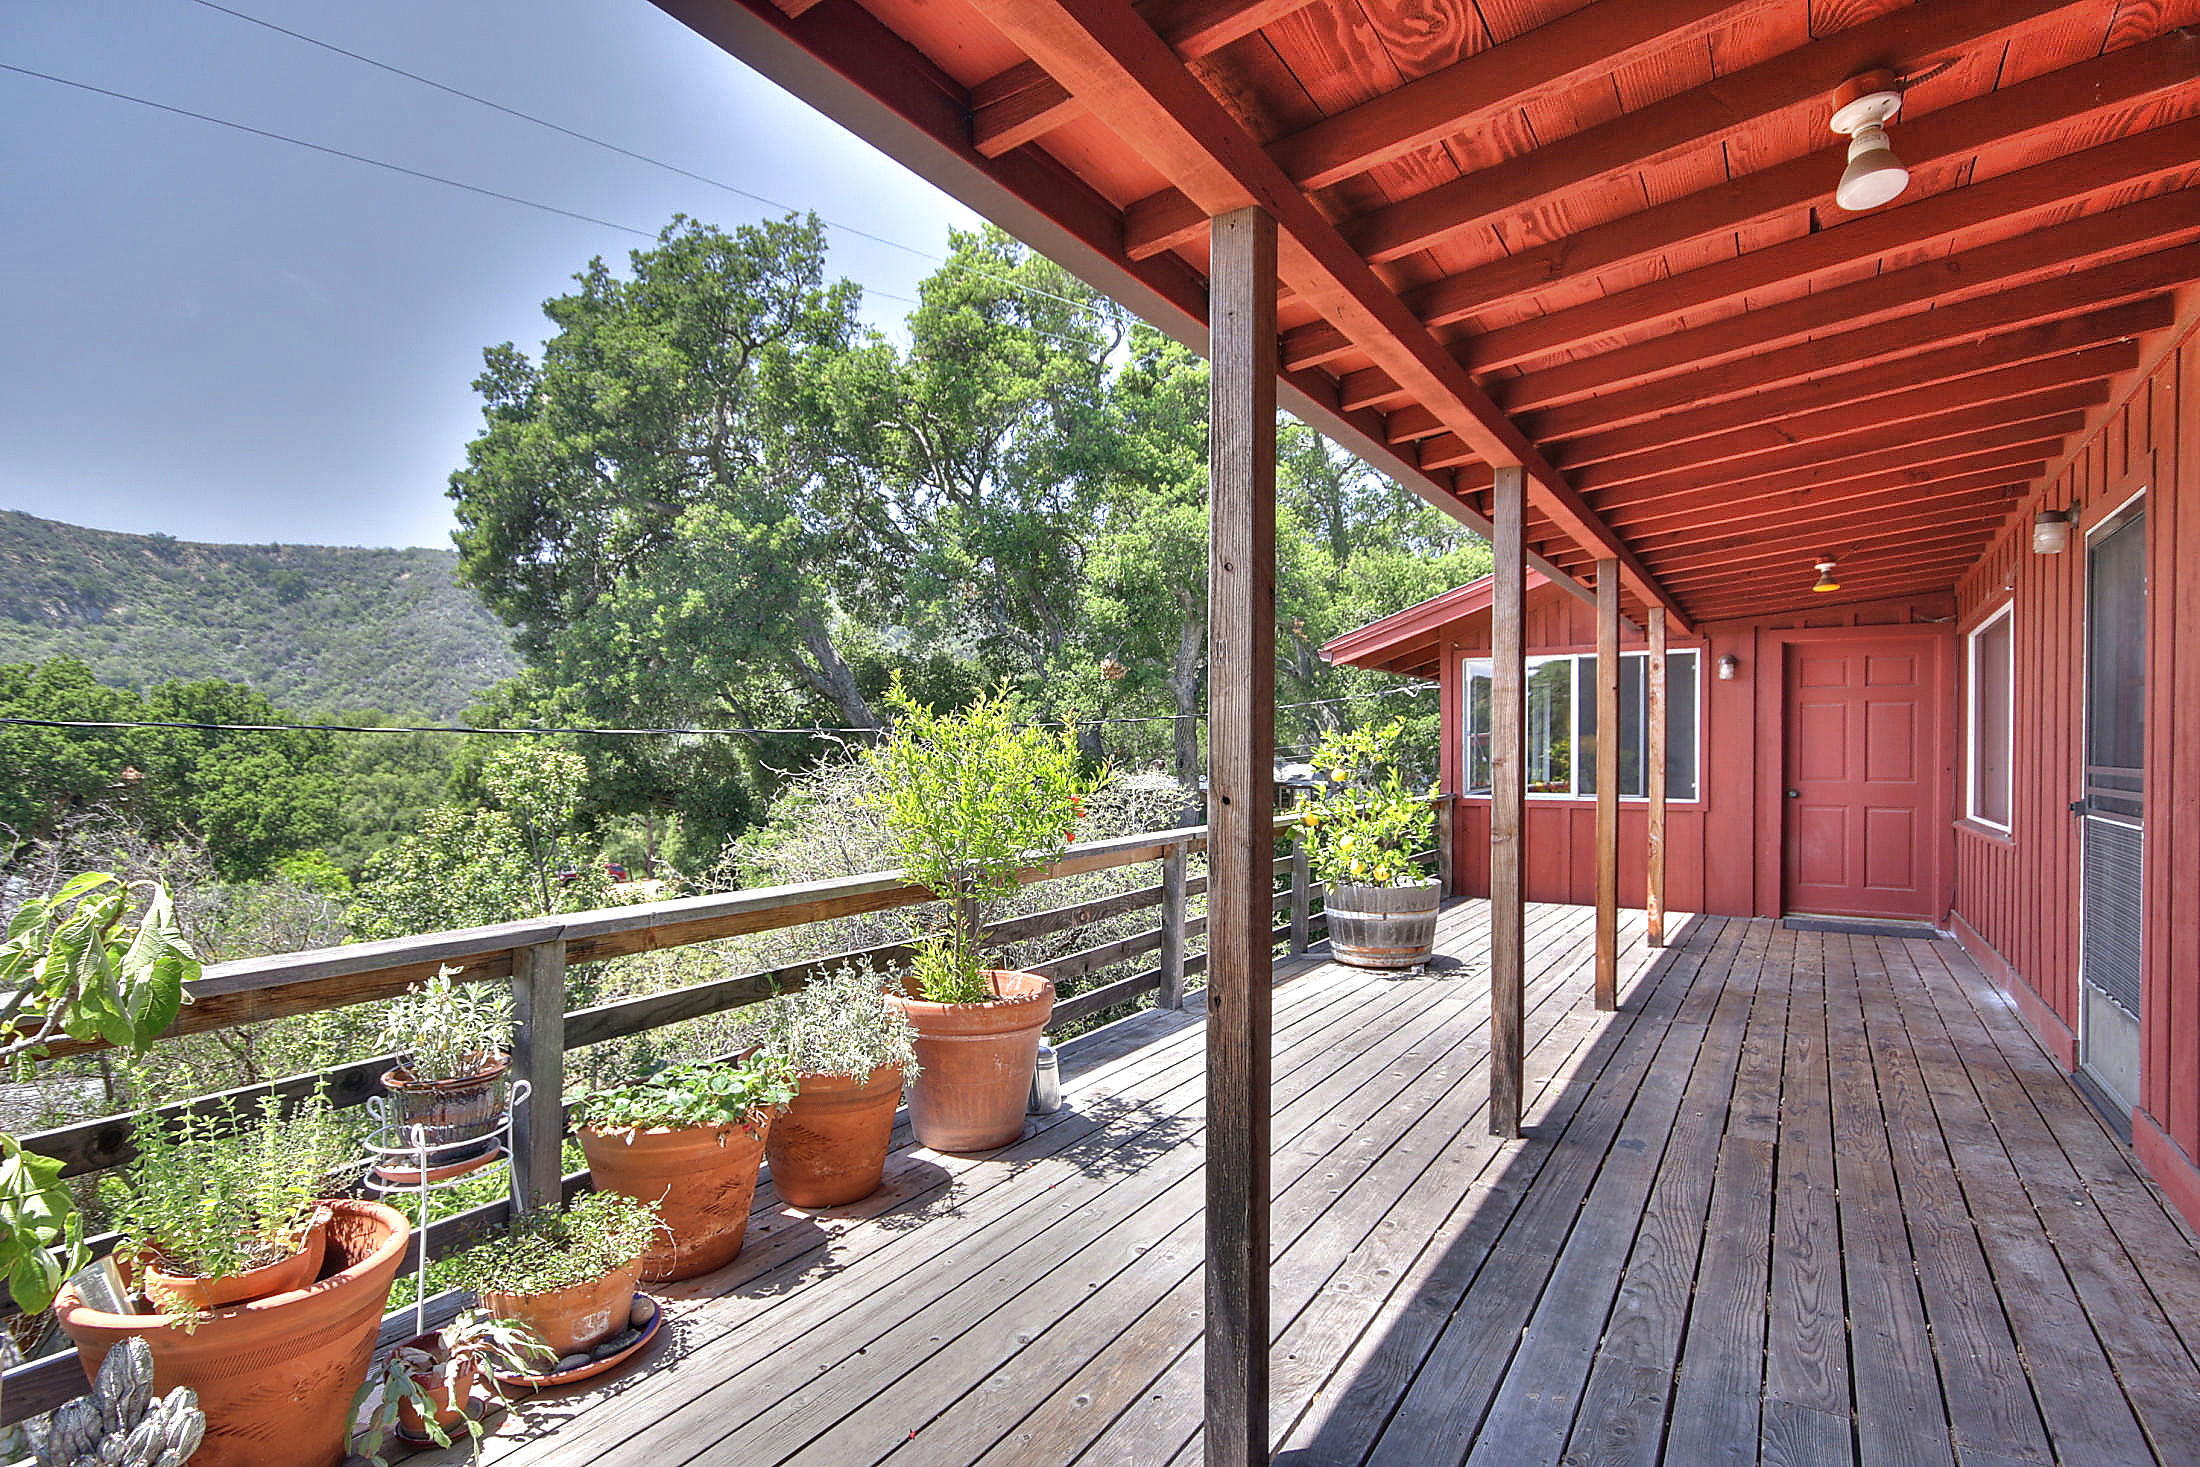 Property photo for 9 San Marcos Trout Clb Santa Barbara, California 93105 - 16-1679